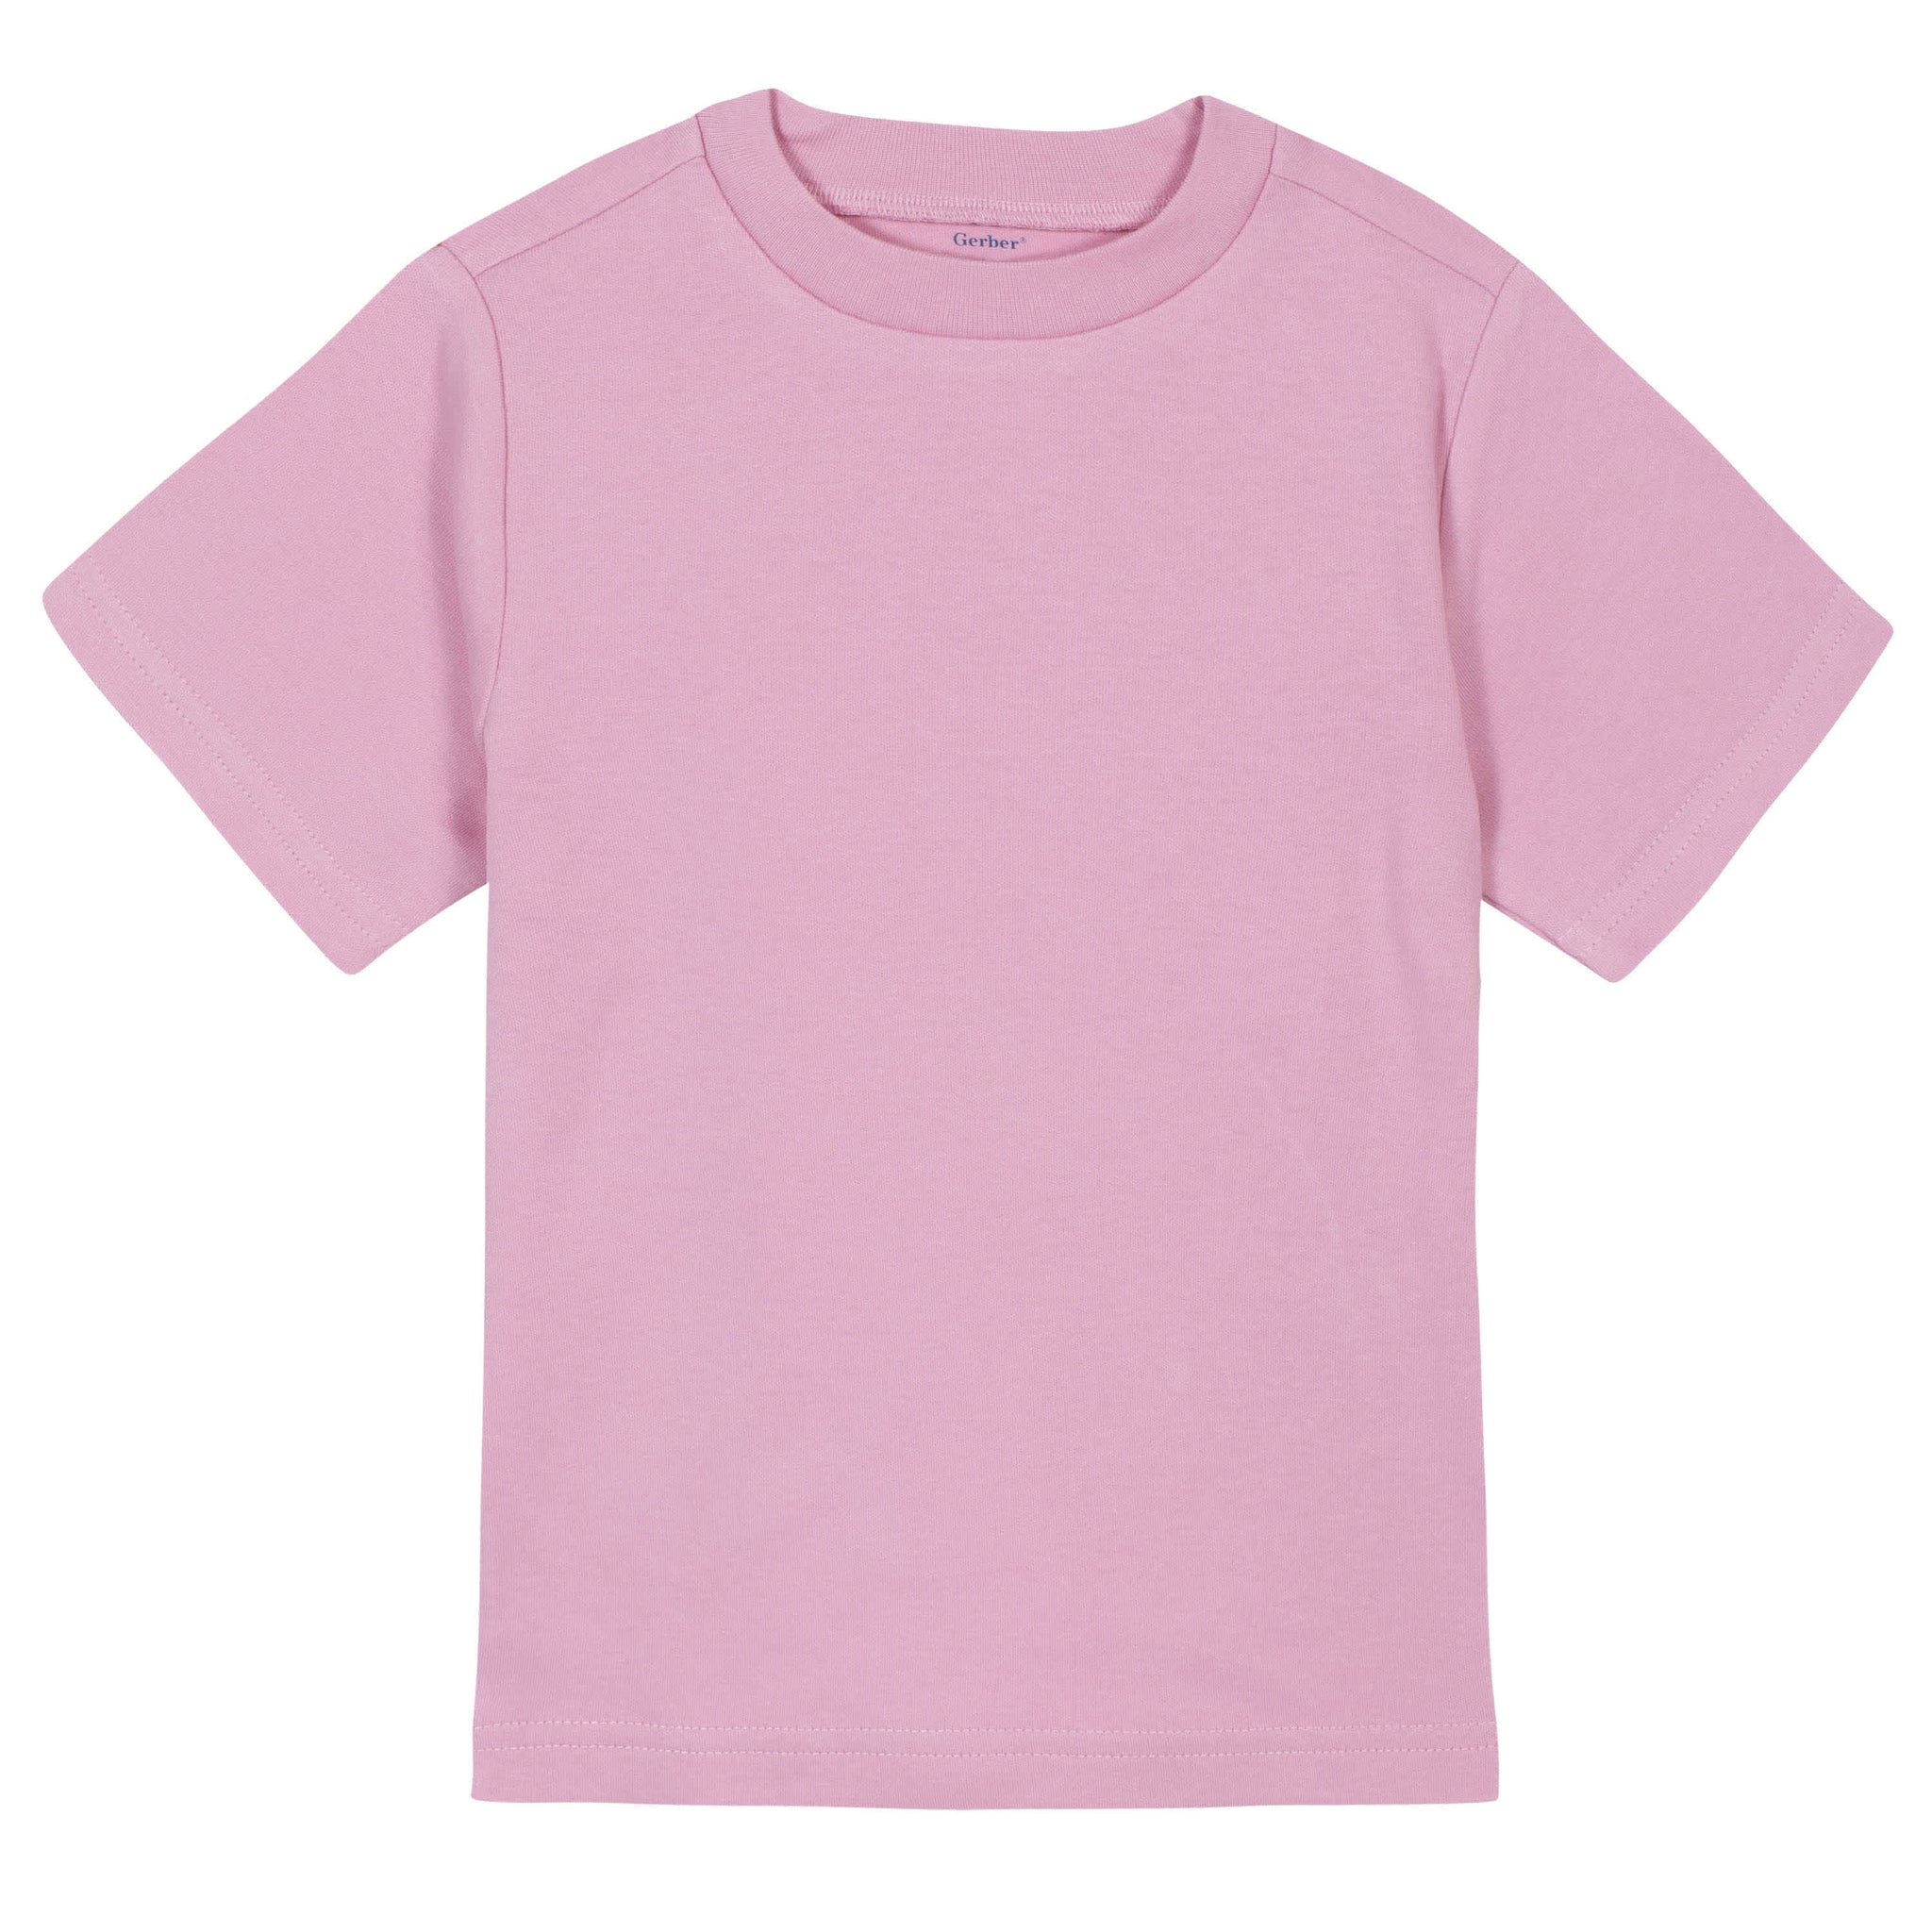 Gerber® Premium Light Pink Short Sleeve Tee Shirt - 10 Colors Available